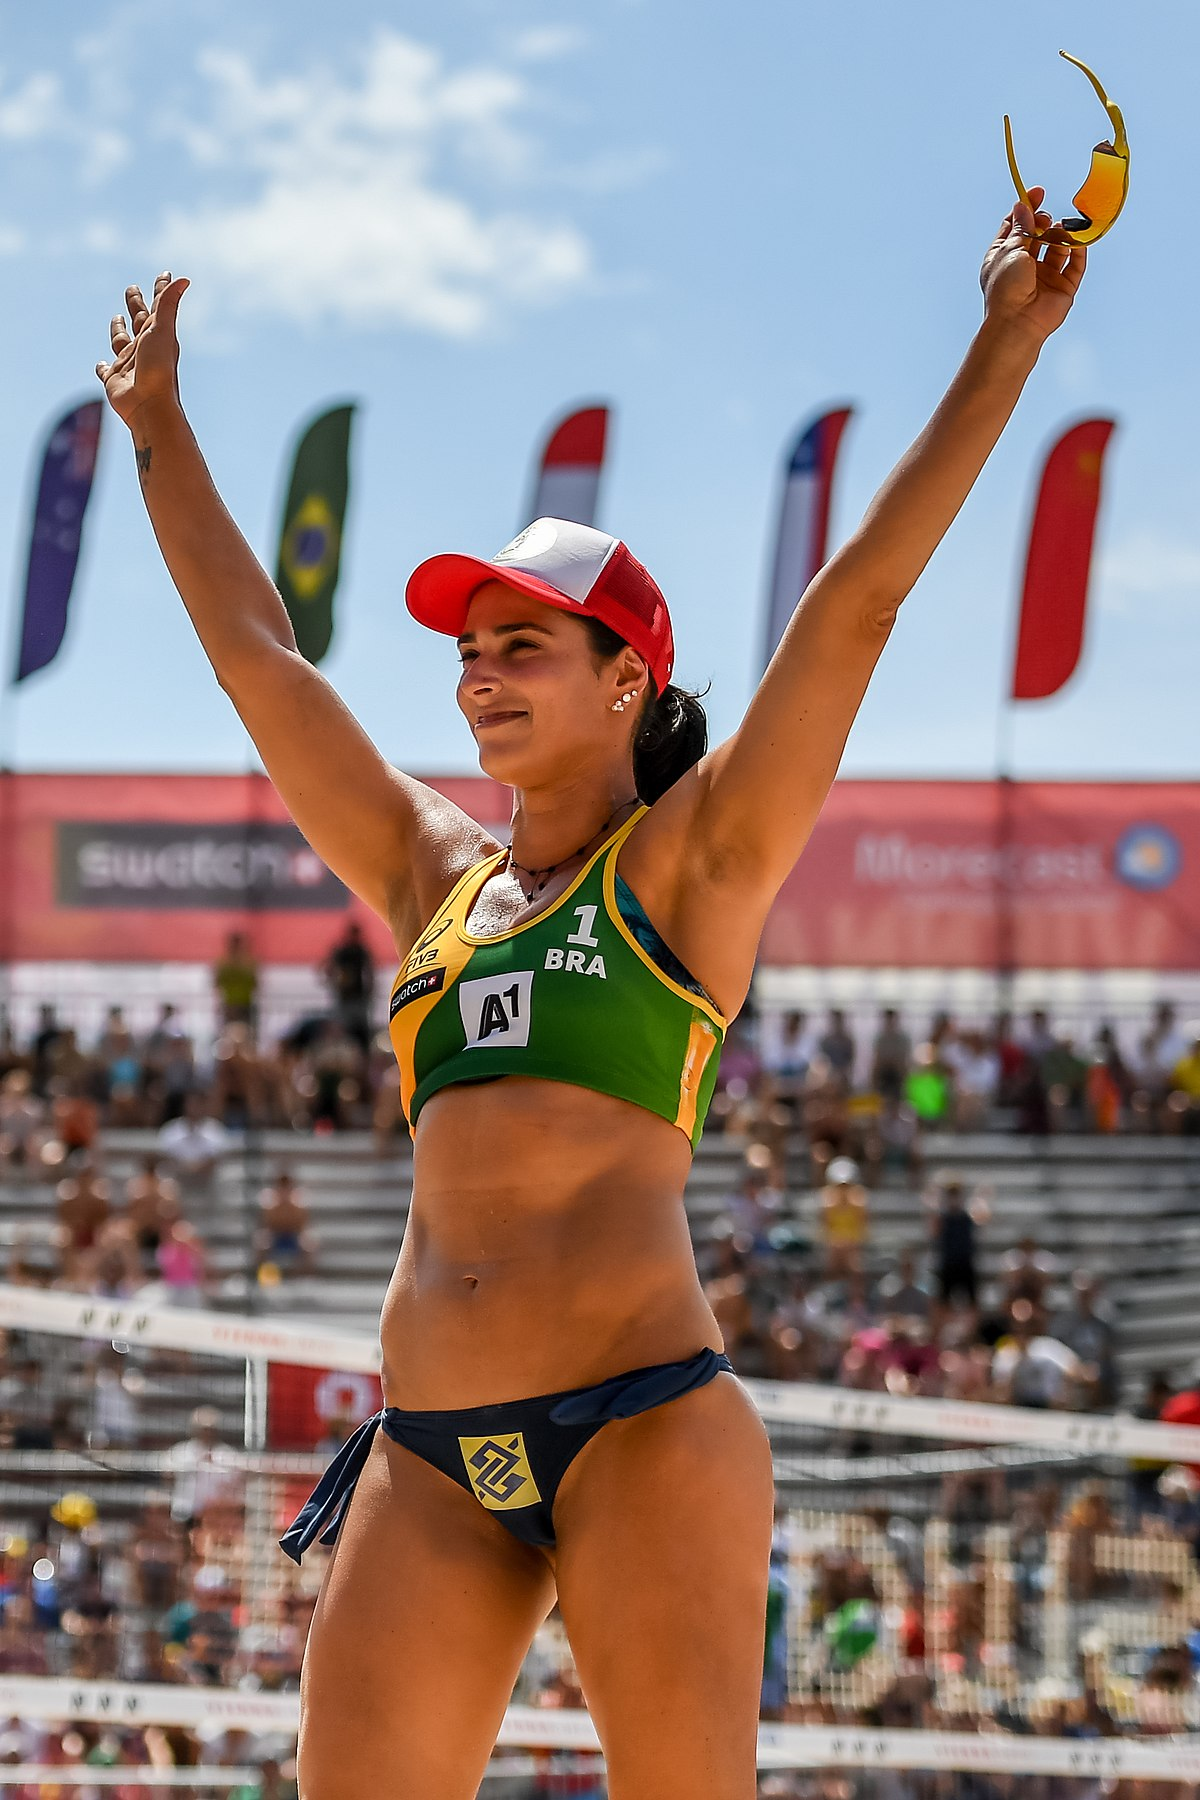 Finale Beachvolleyball Wm 2020